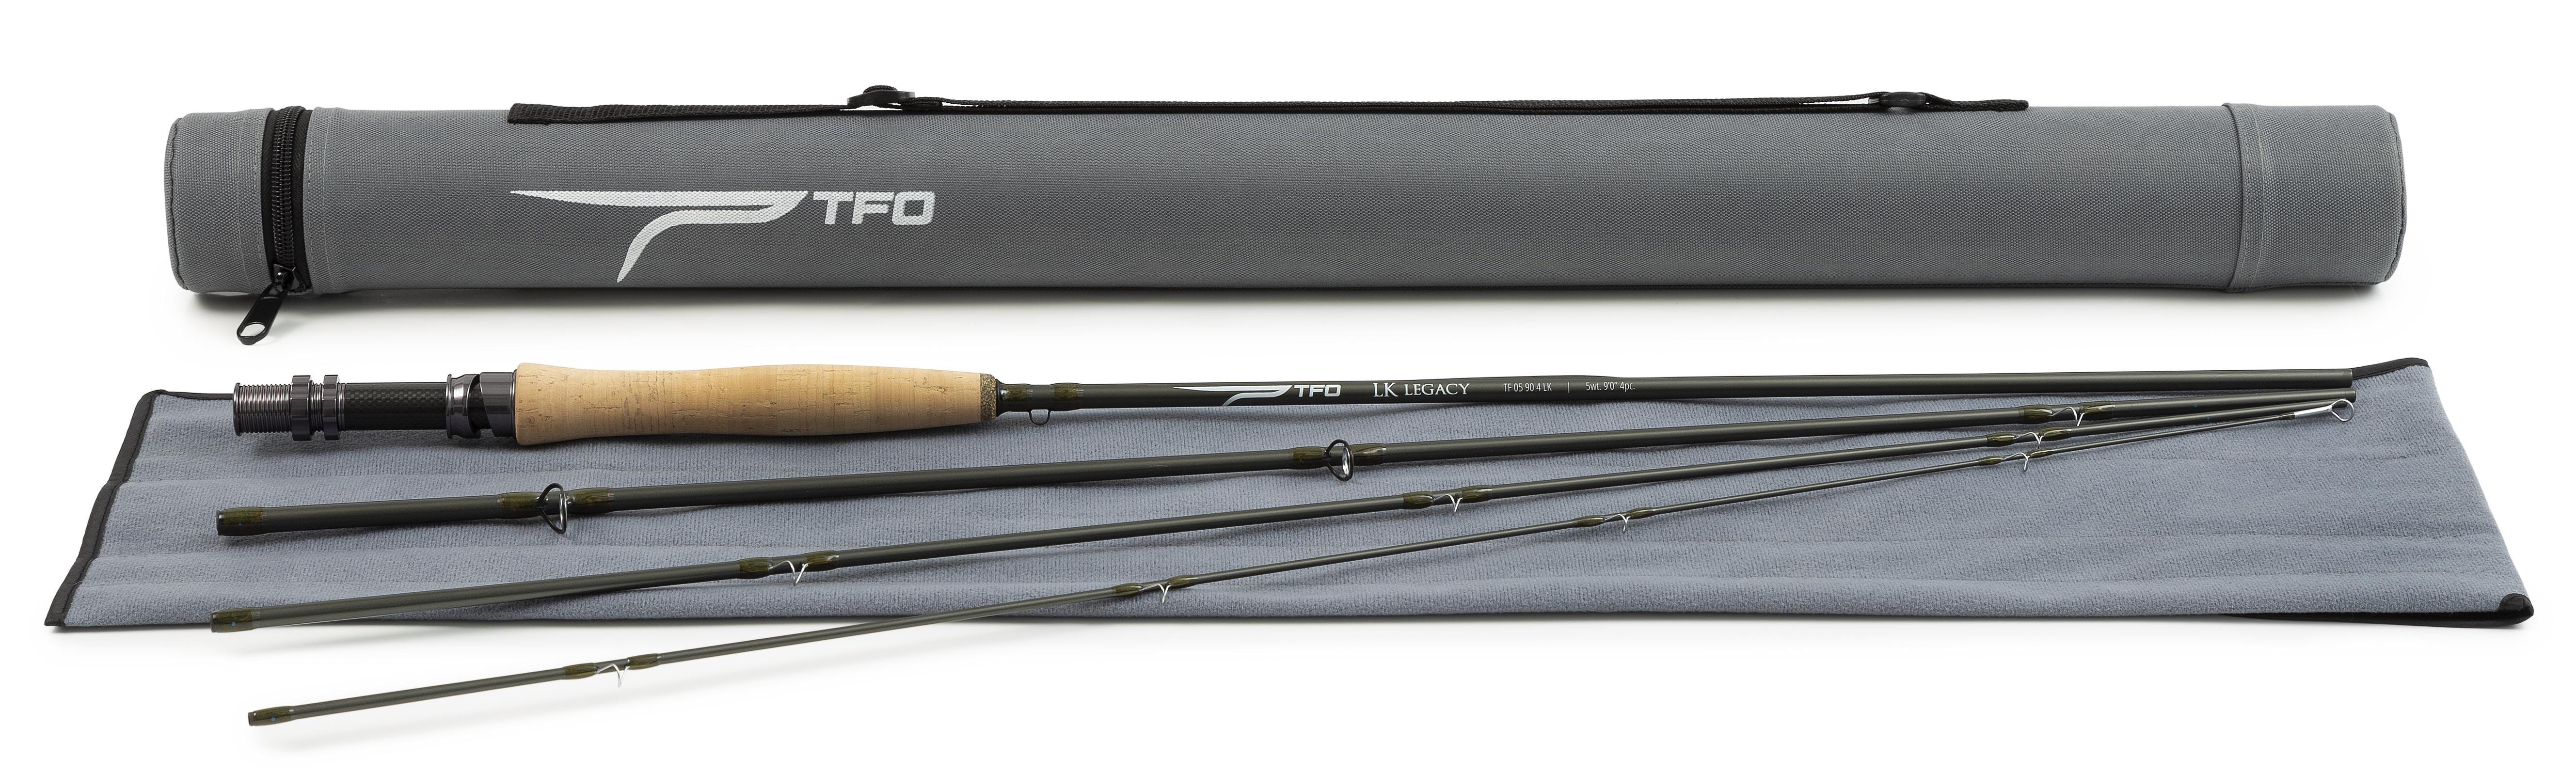 Temple Fork Outfitters LK Legacy Fly Rod